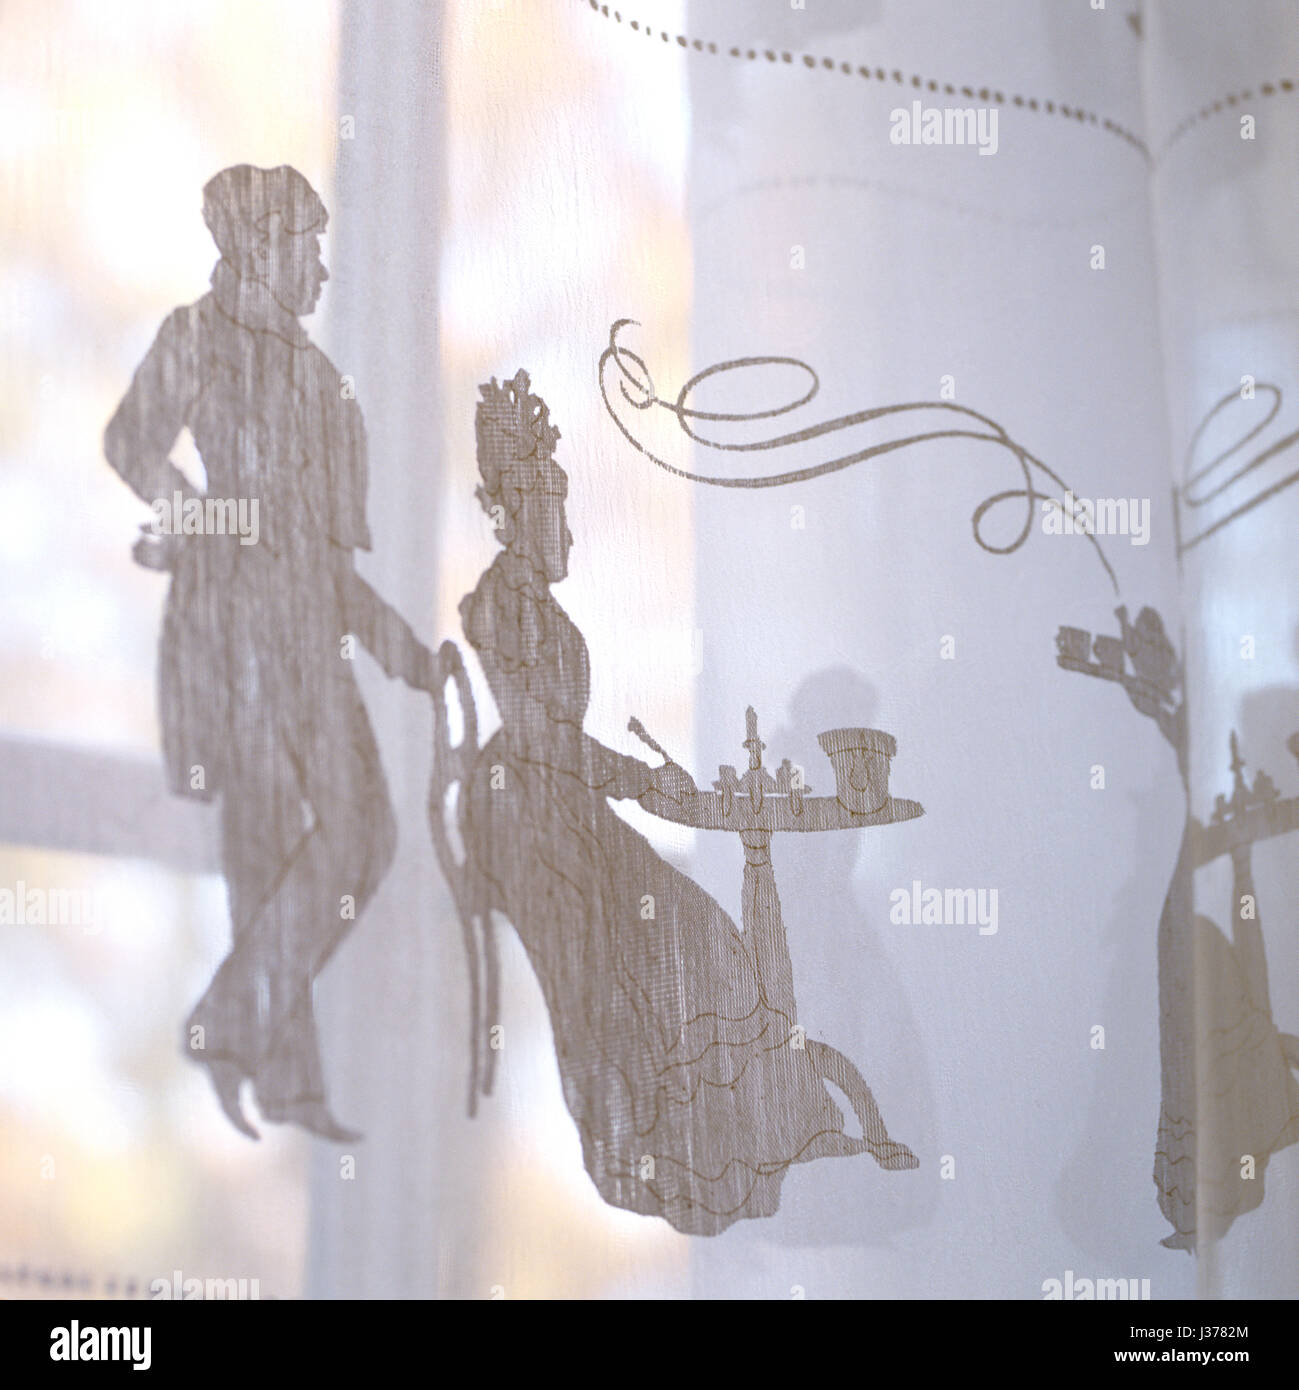 Sheer curtain with illustration of man and woman. - Stock Image